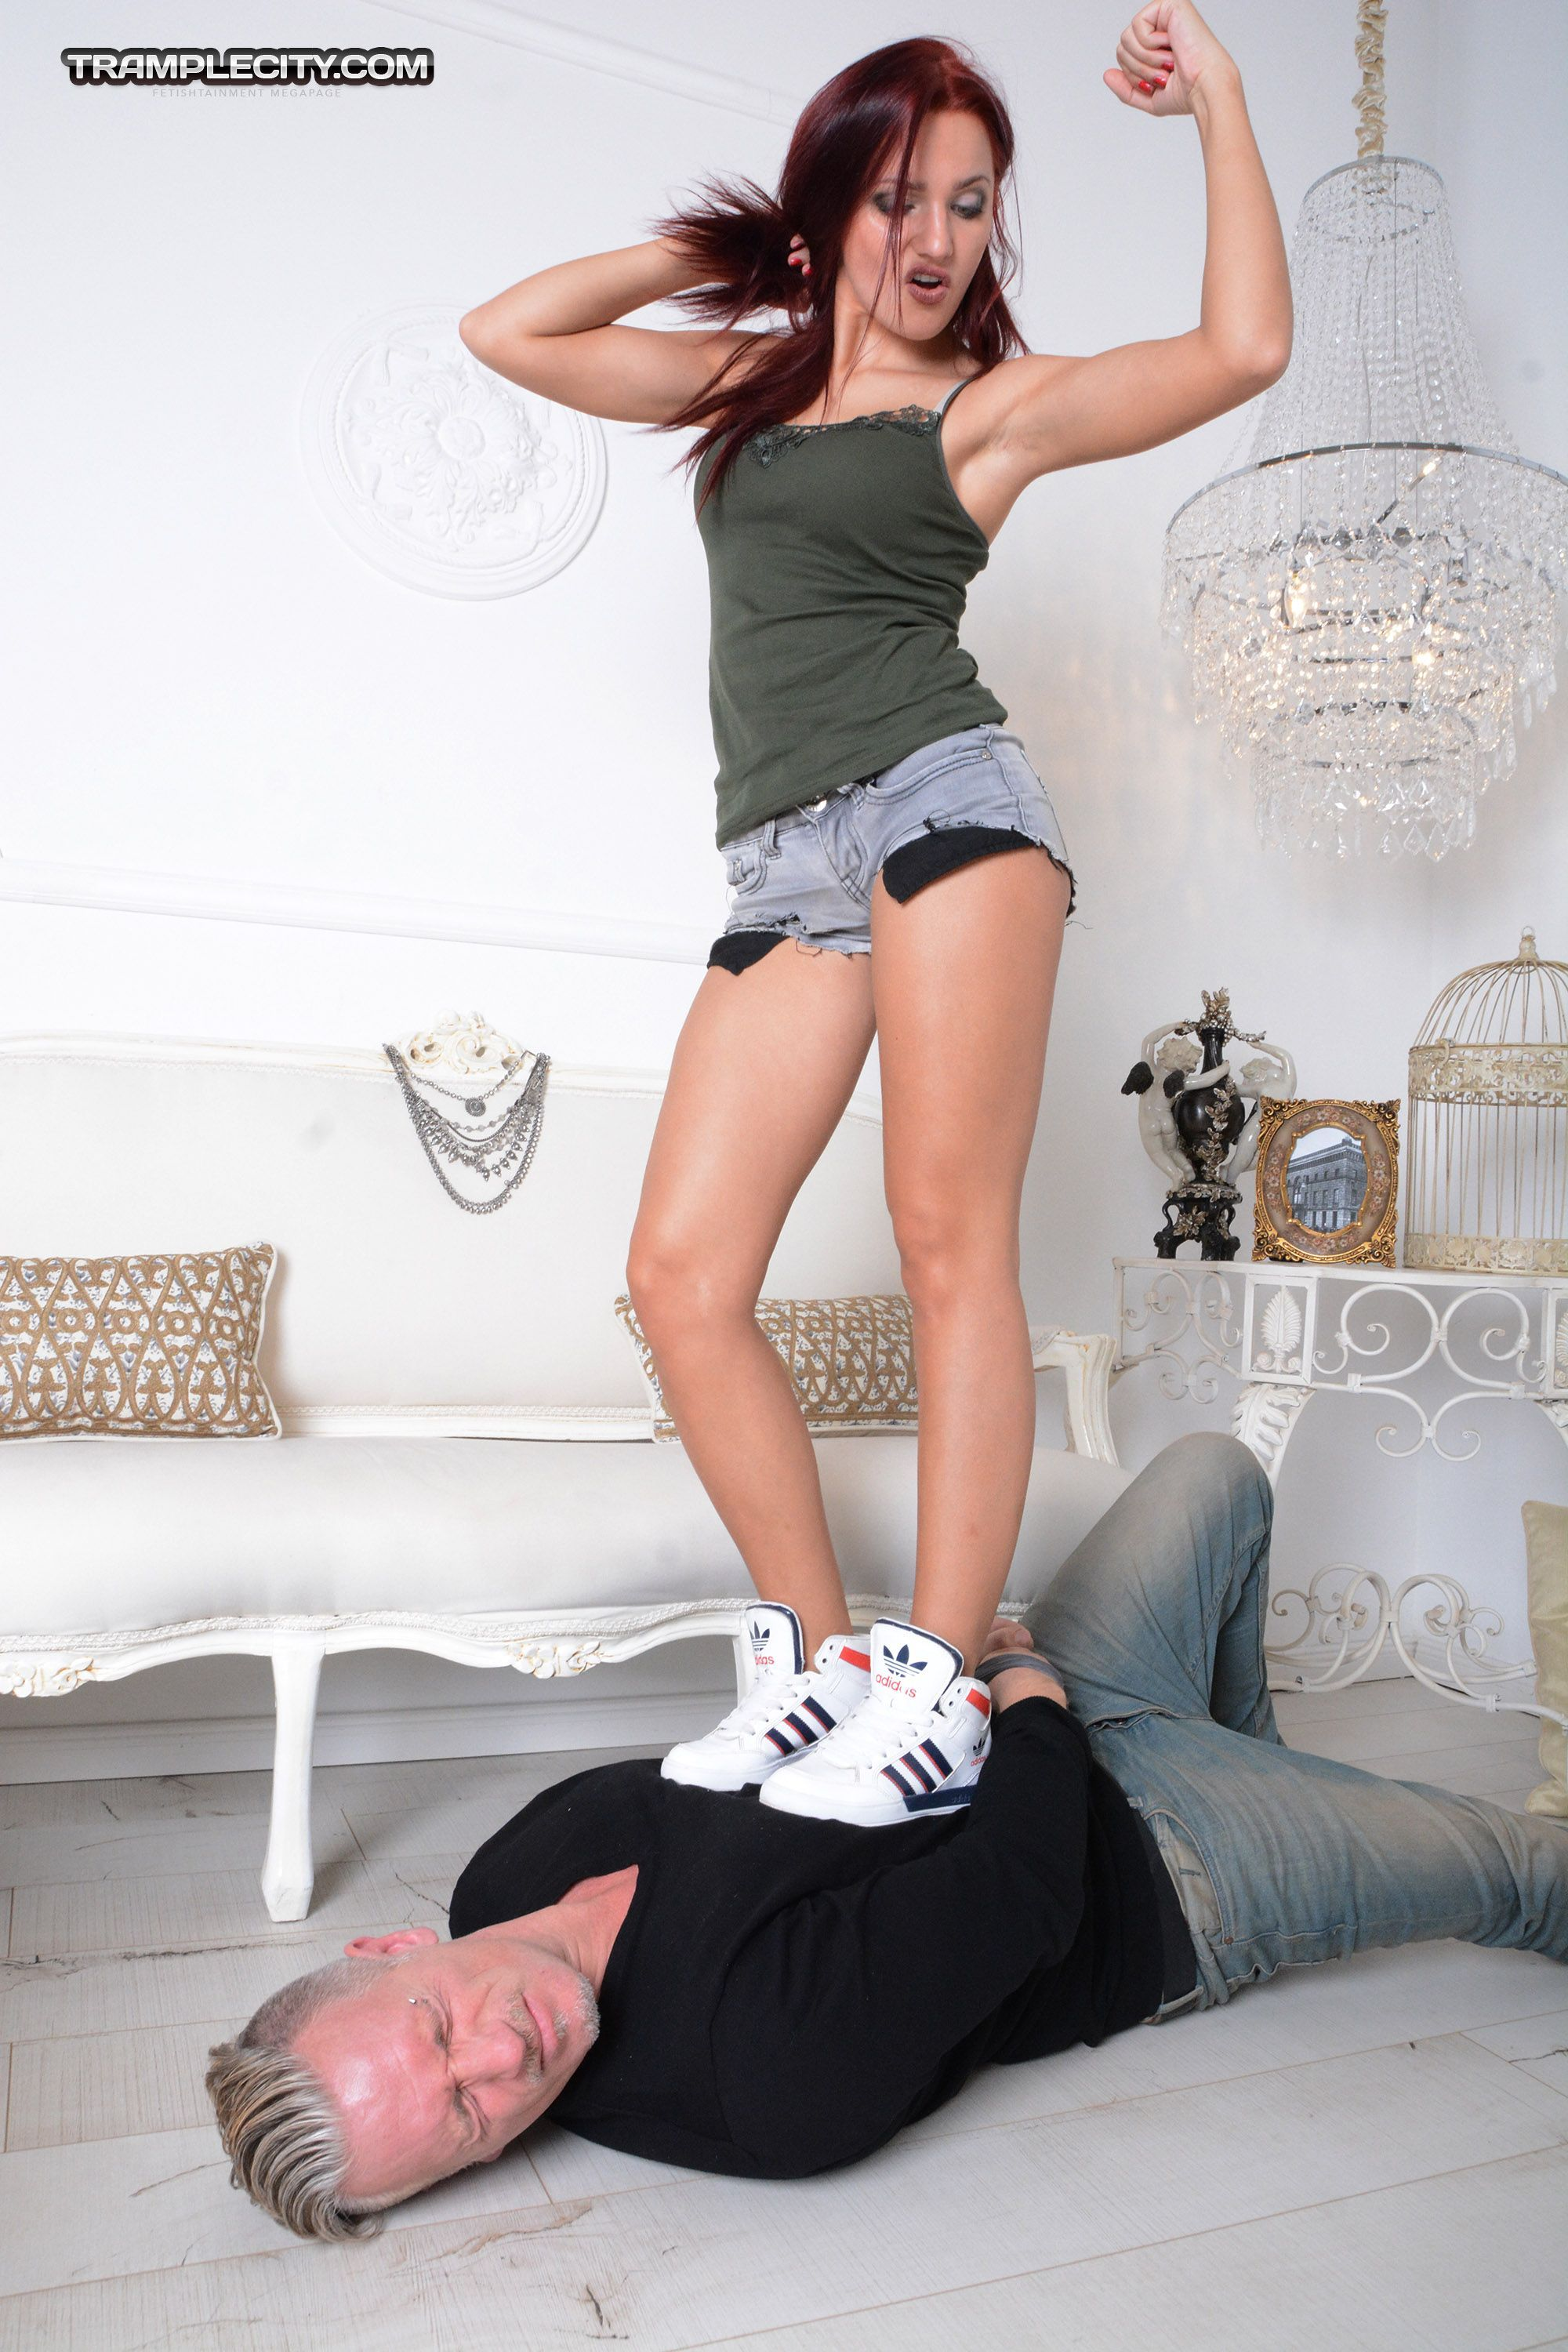 Foot-long reccomend Sneakers trampling fetish